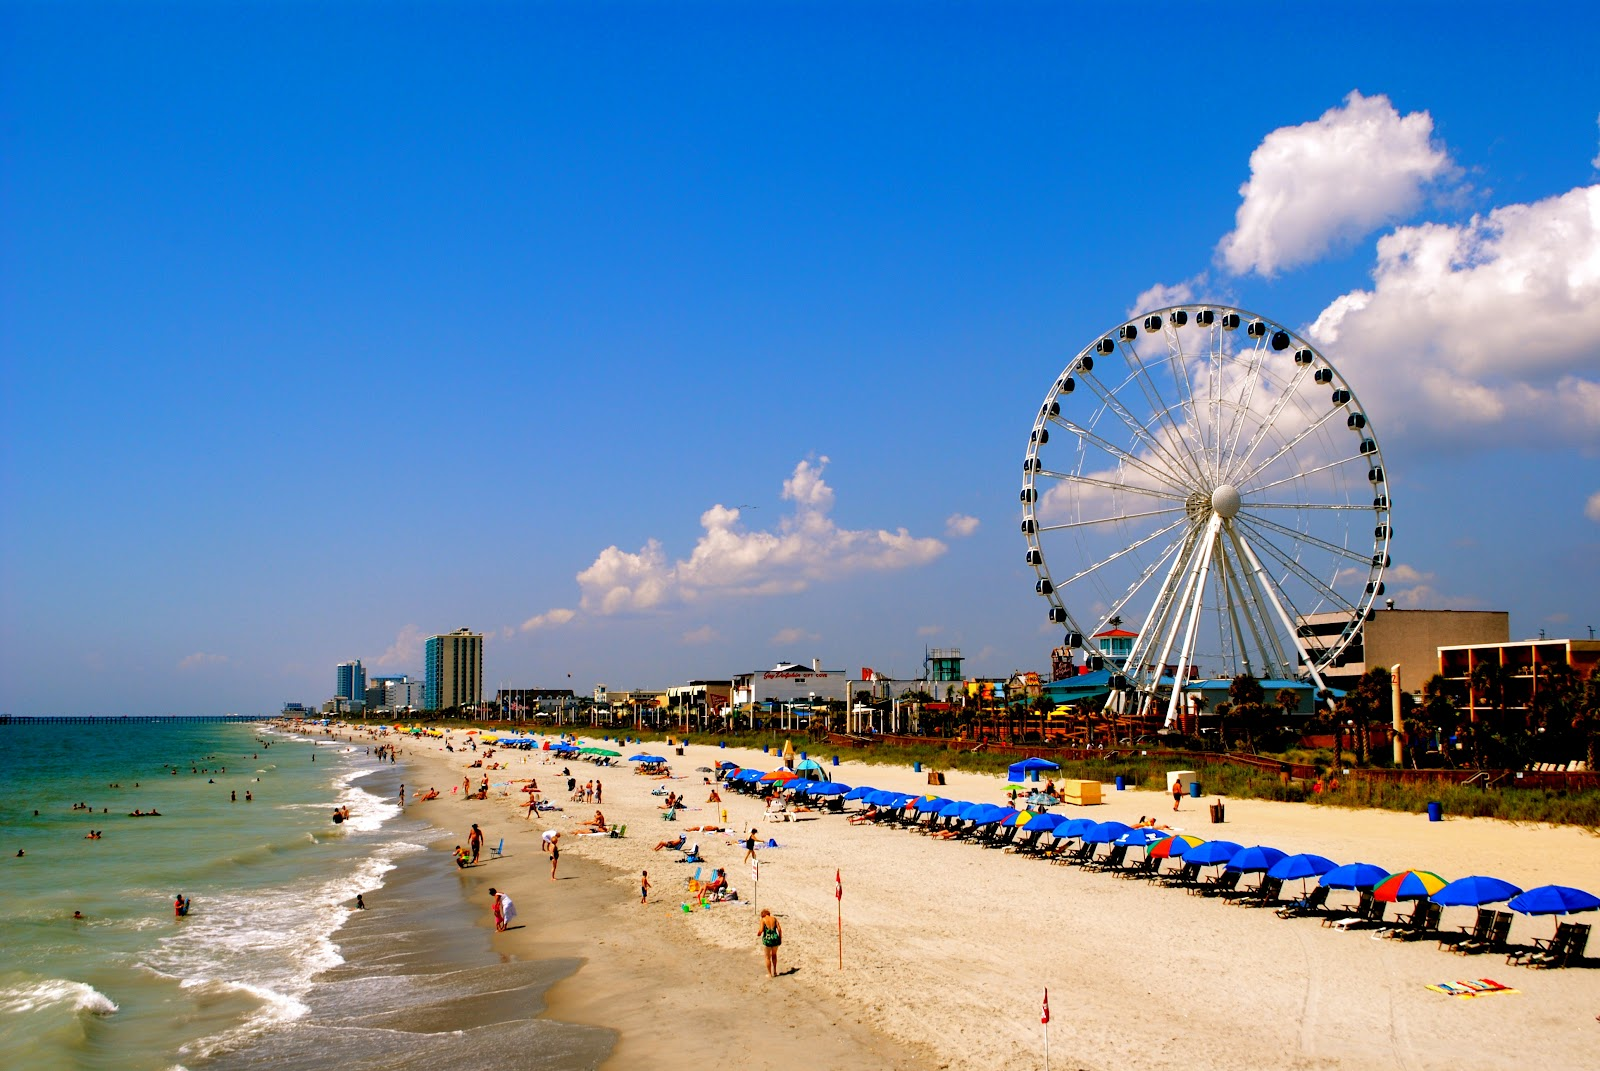 2020 Retreat- Myrtle Beach, South Carolina- CANCELLED BECAUSE WELL 2020